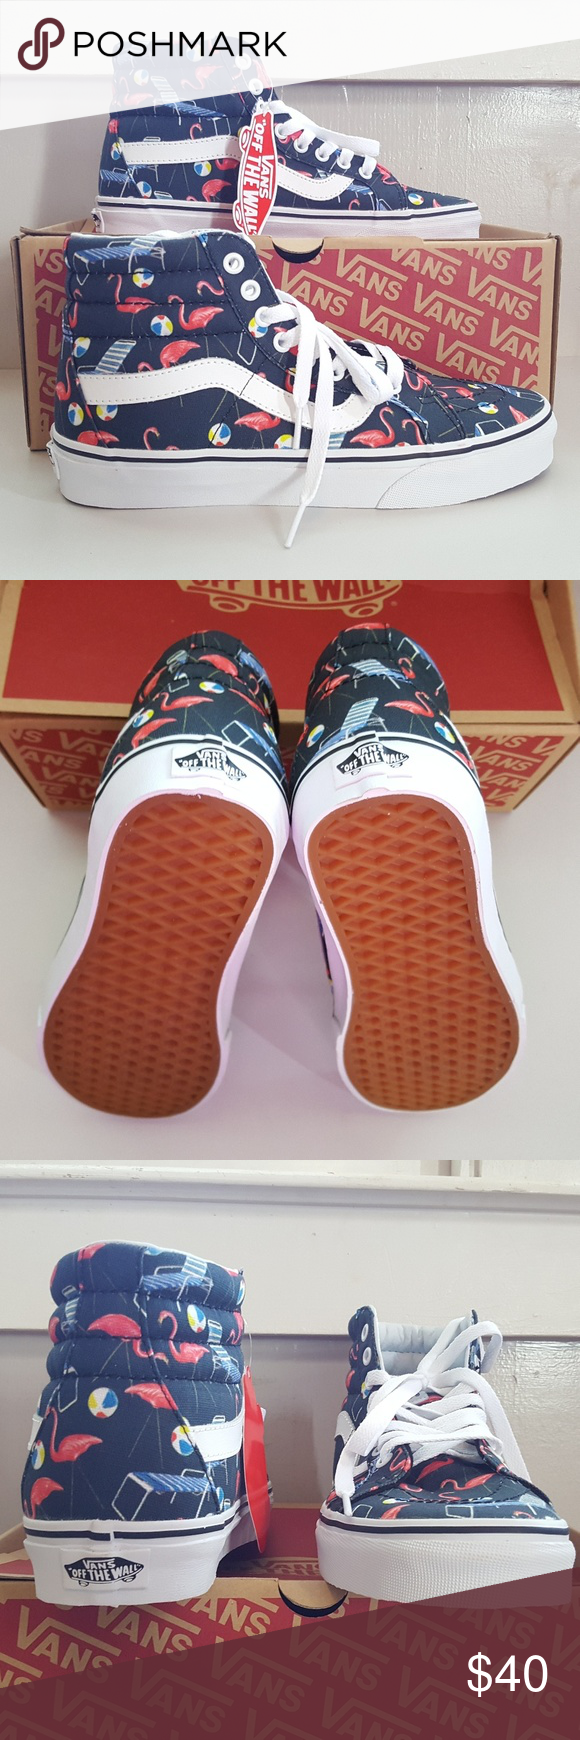 NWT VANS Pool Vibes Fun in the Sun Shoes Fun summer print hi-top shoes.  Sturdy canvas upper. So cool and comfy. Size  Women 8 Men 6.5 vans Shoes  Sneakers 50f9d0b3d